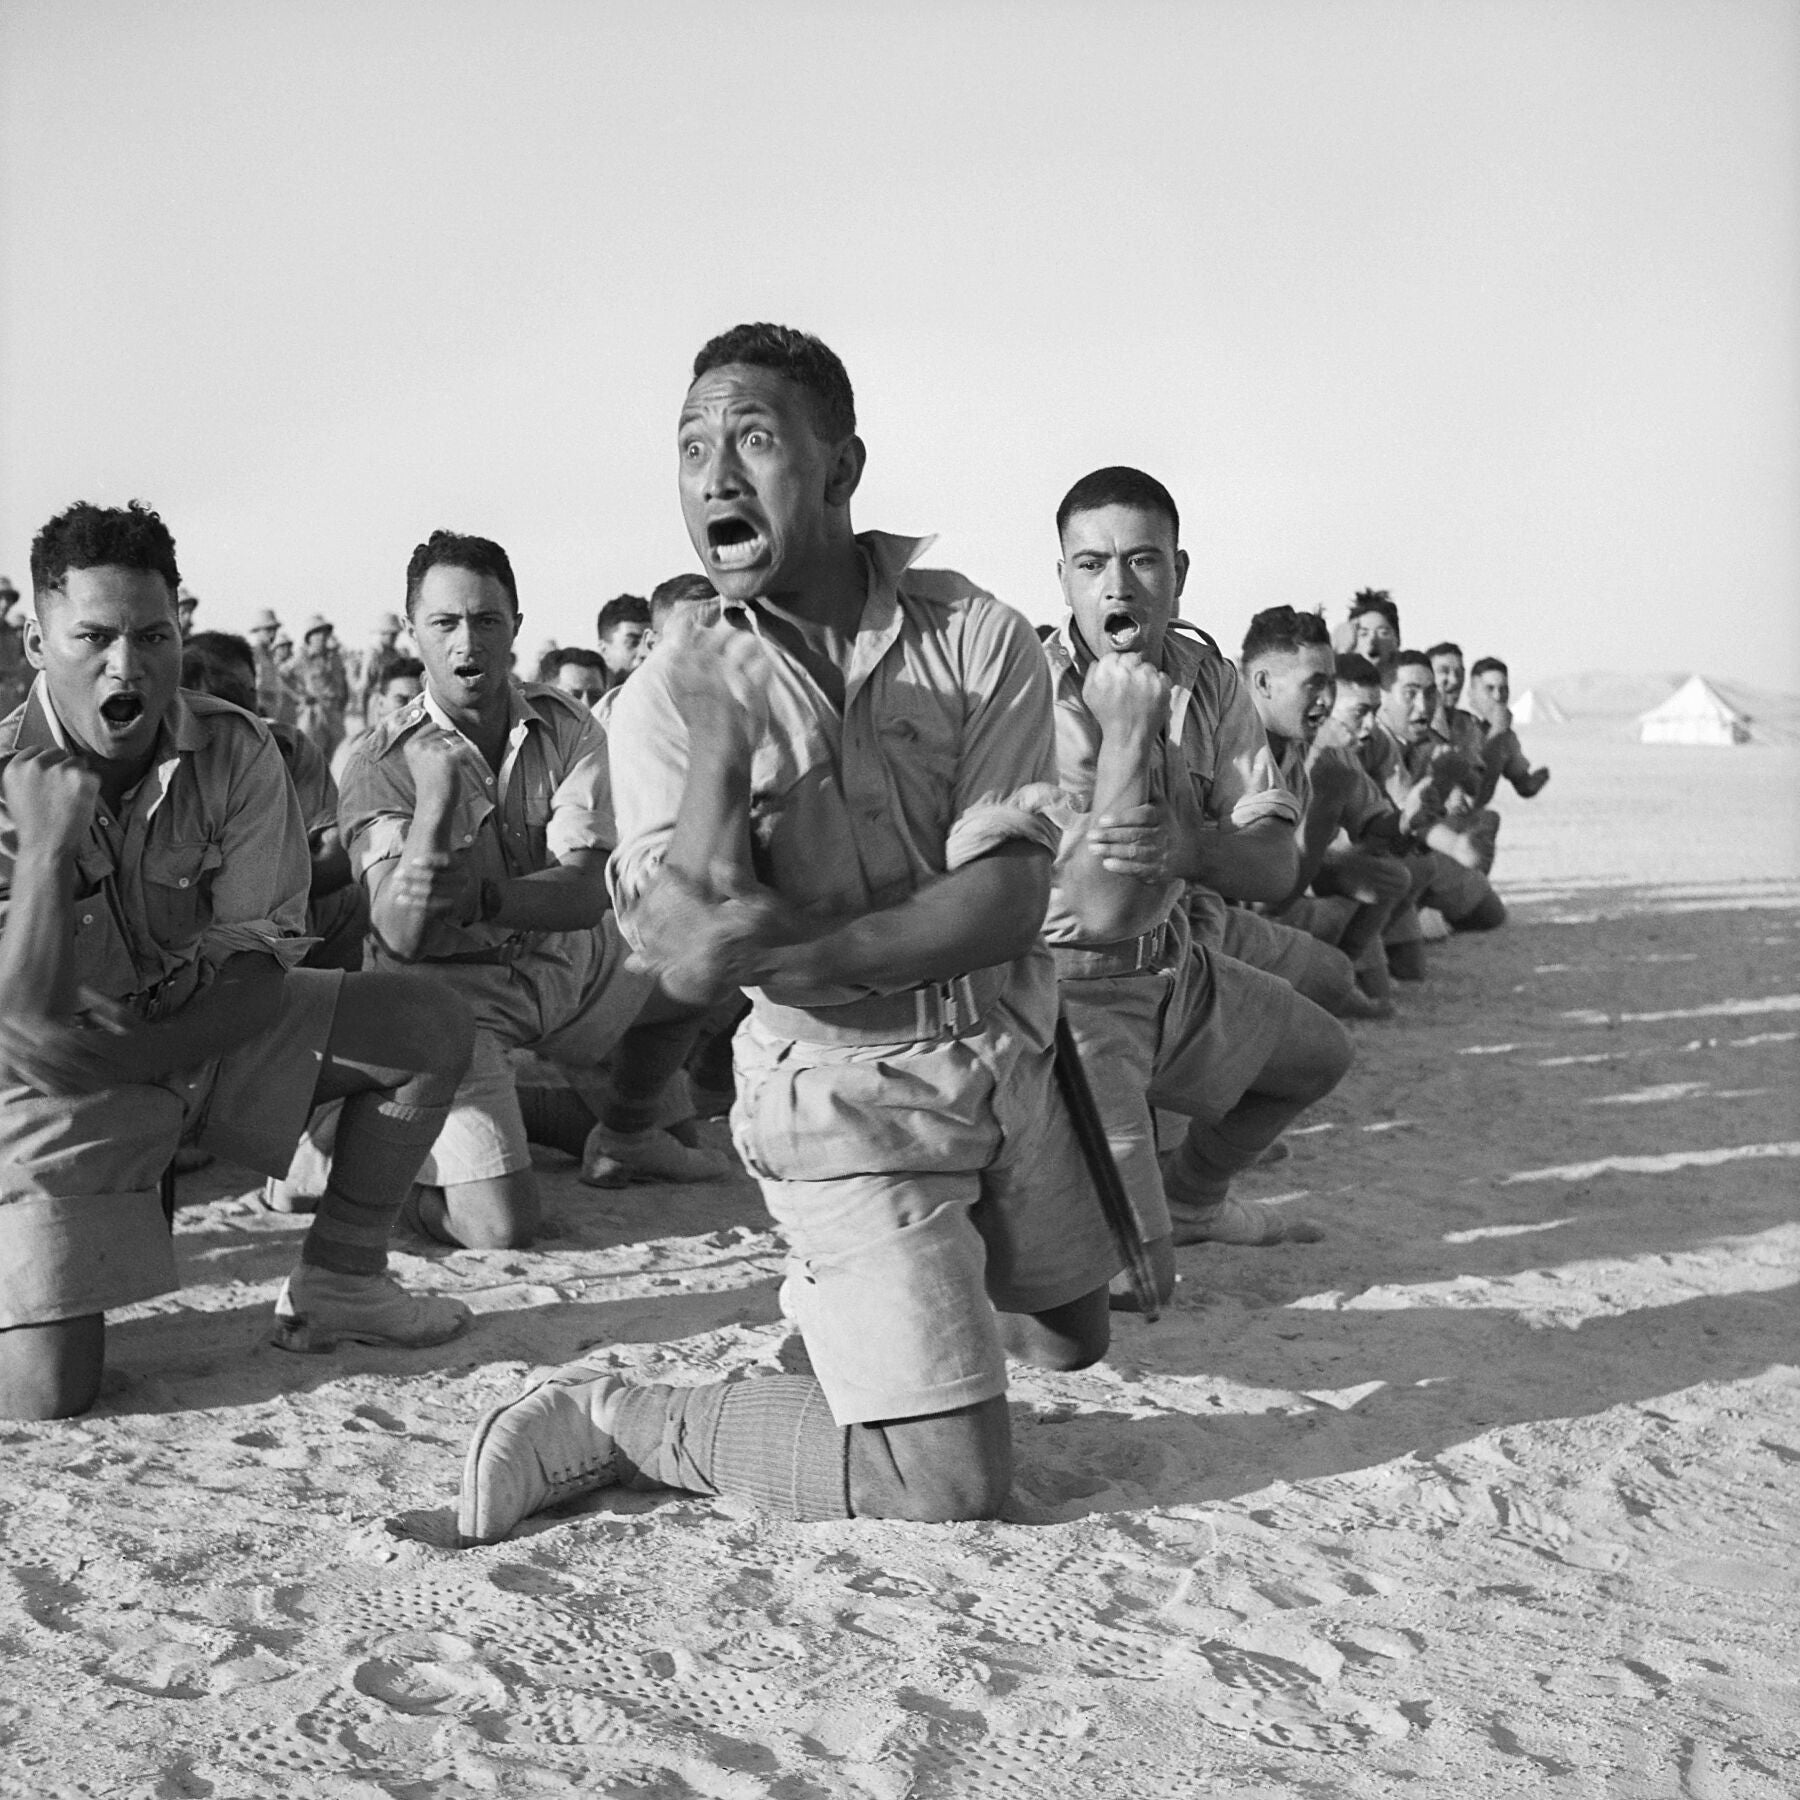 Maori Battalion Performing a Haka in Helwan, Egypt - 1941